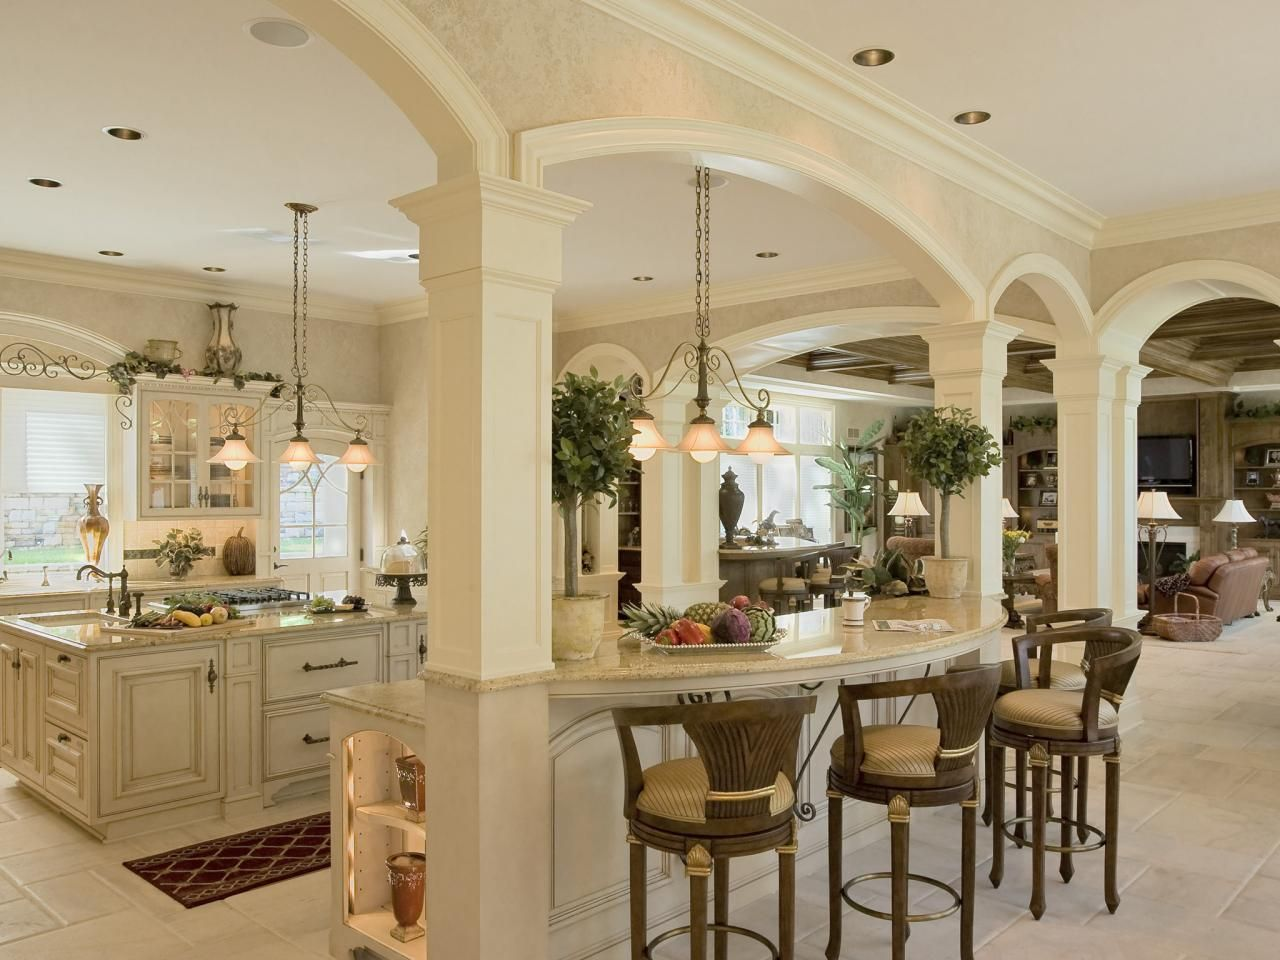 French Kitchen Design Pictures Ideas & Tips From  French Amazing French Kitchen Design Design Decoration